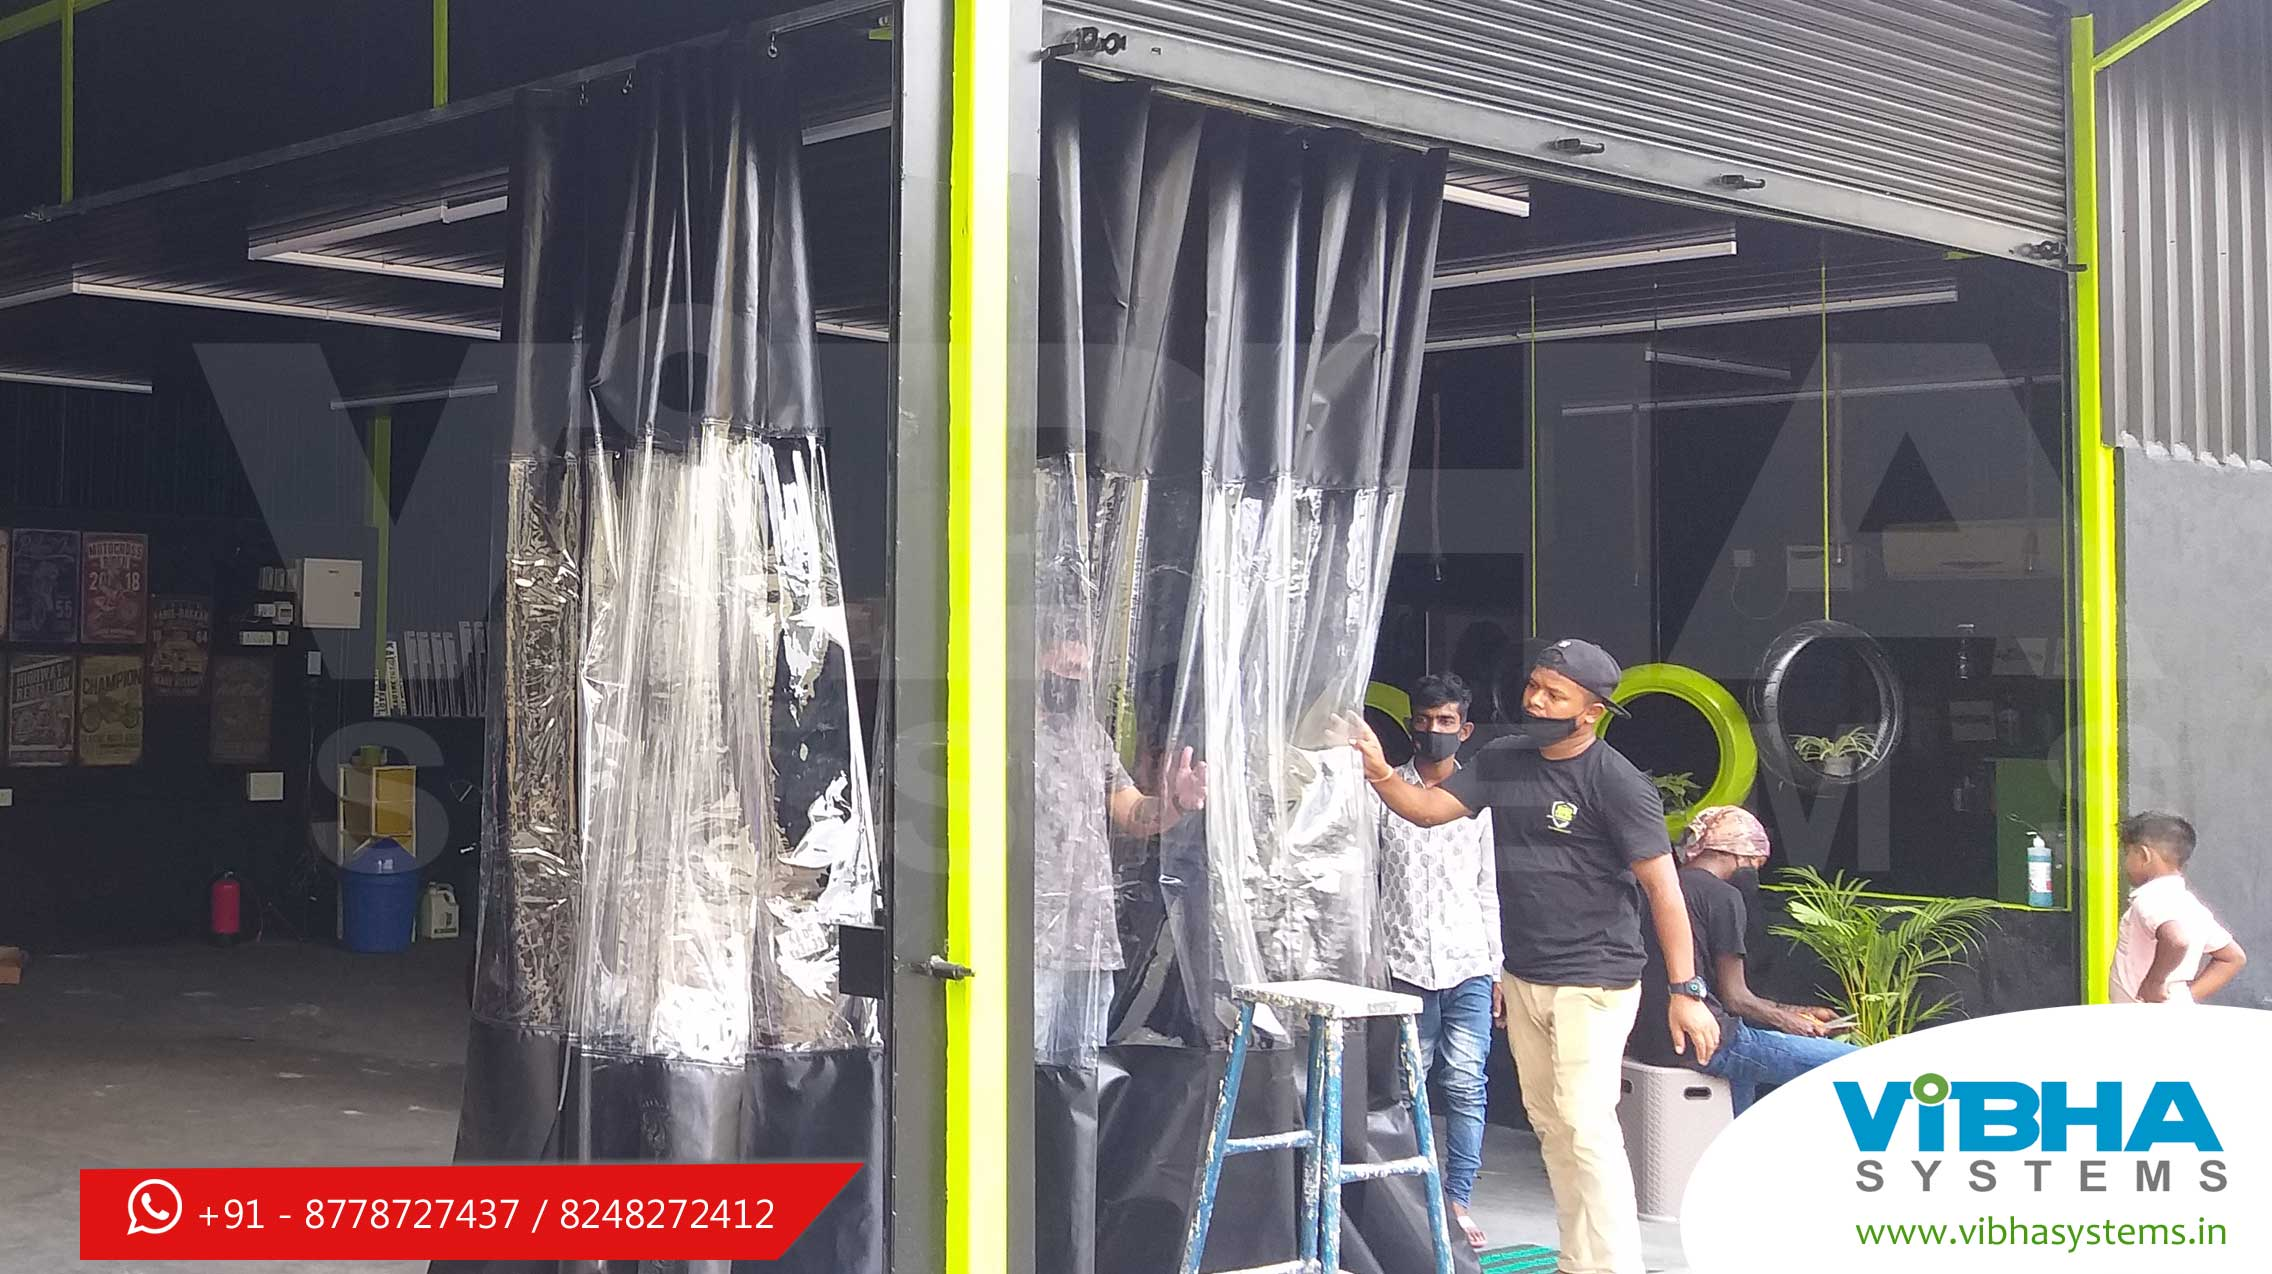 Portable wash bay curtains Sliding type car wash curtains india Foldable car wash curtains india Washable bay curtains Car wash area curtains Industrial wash down curtains Carwash curtain Industrial curtains